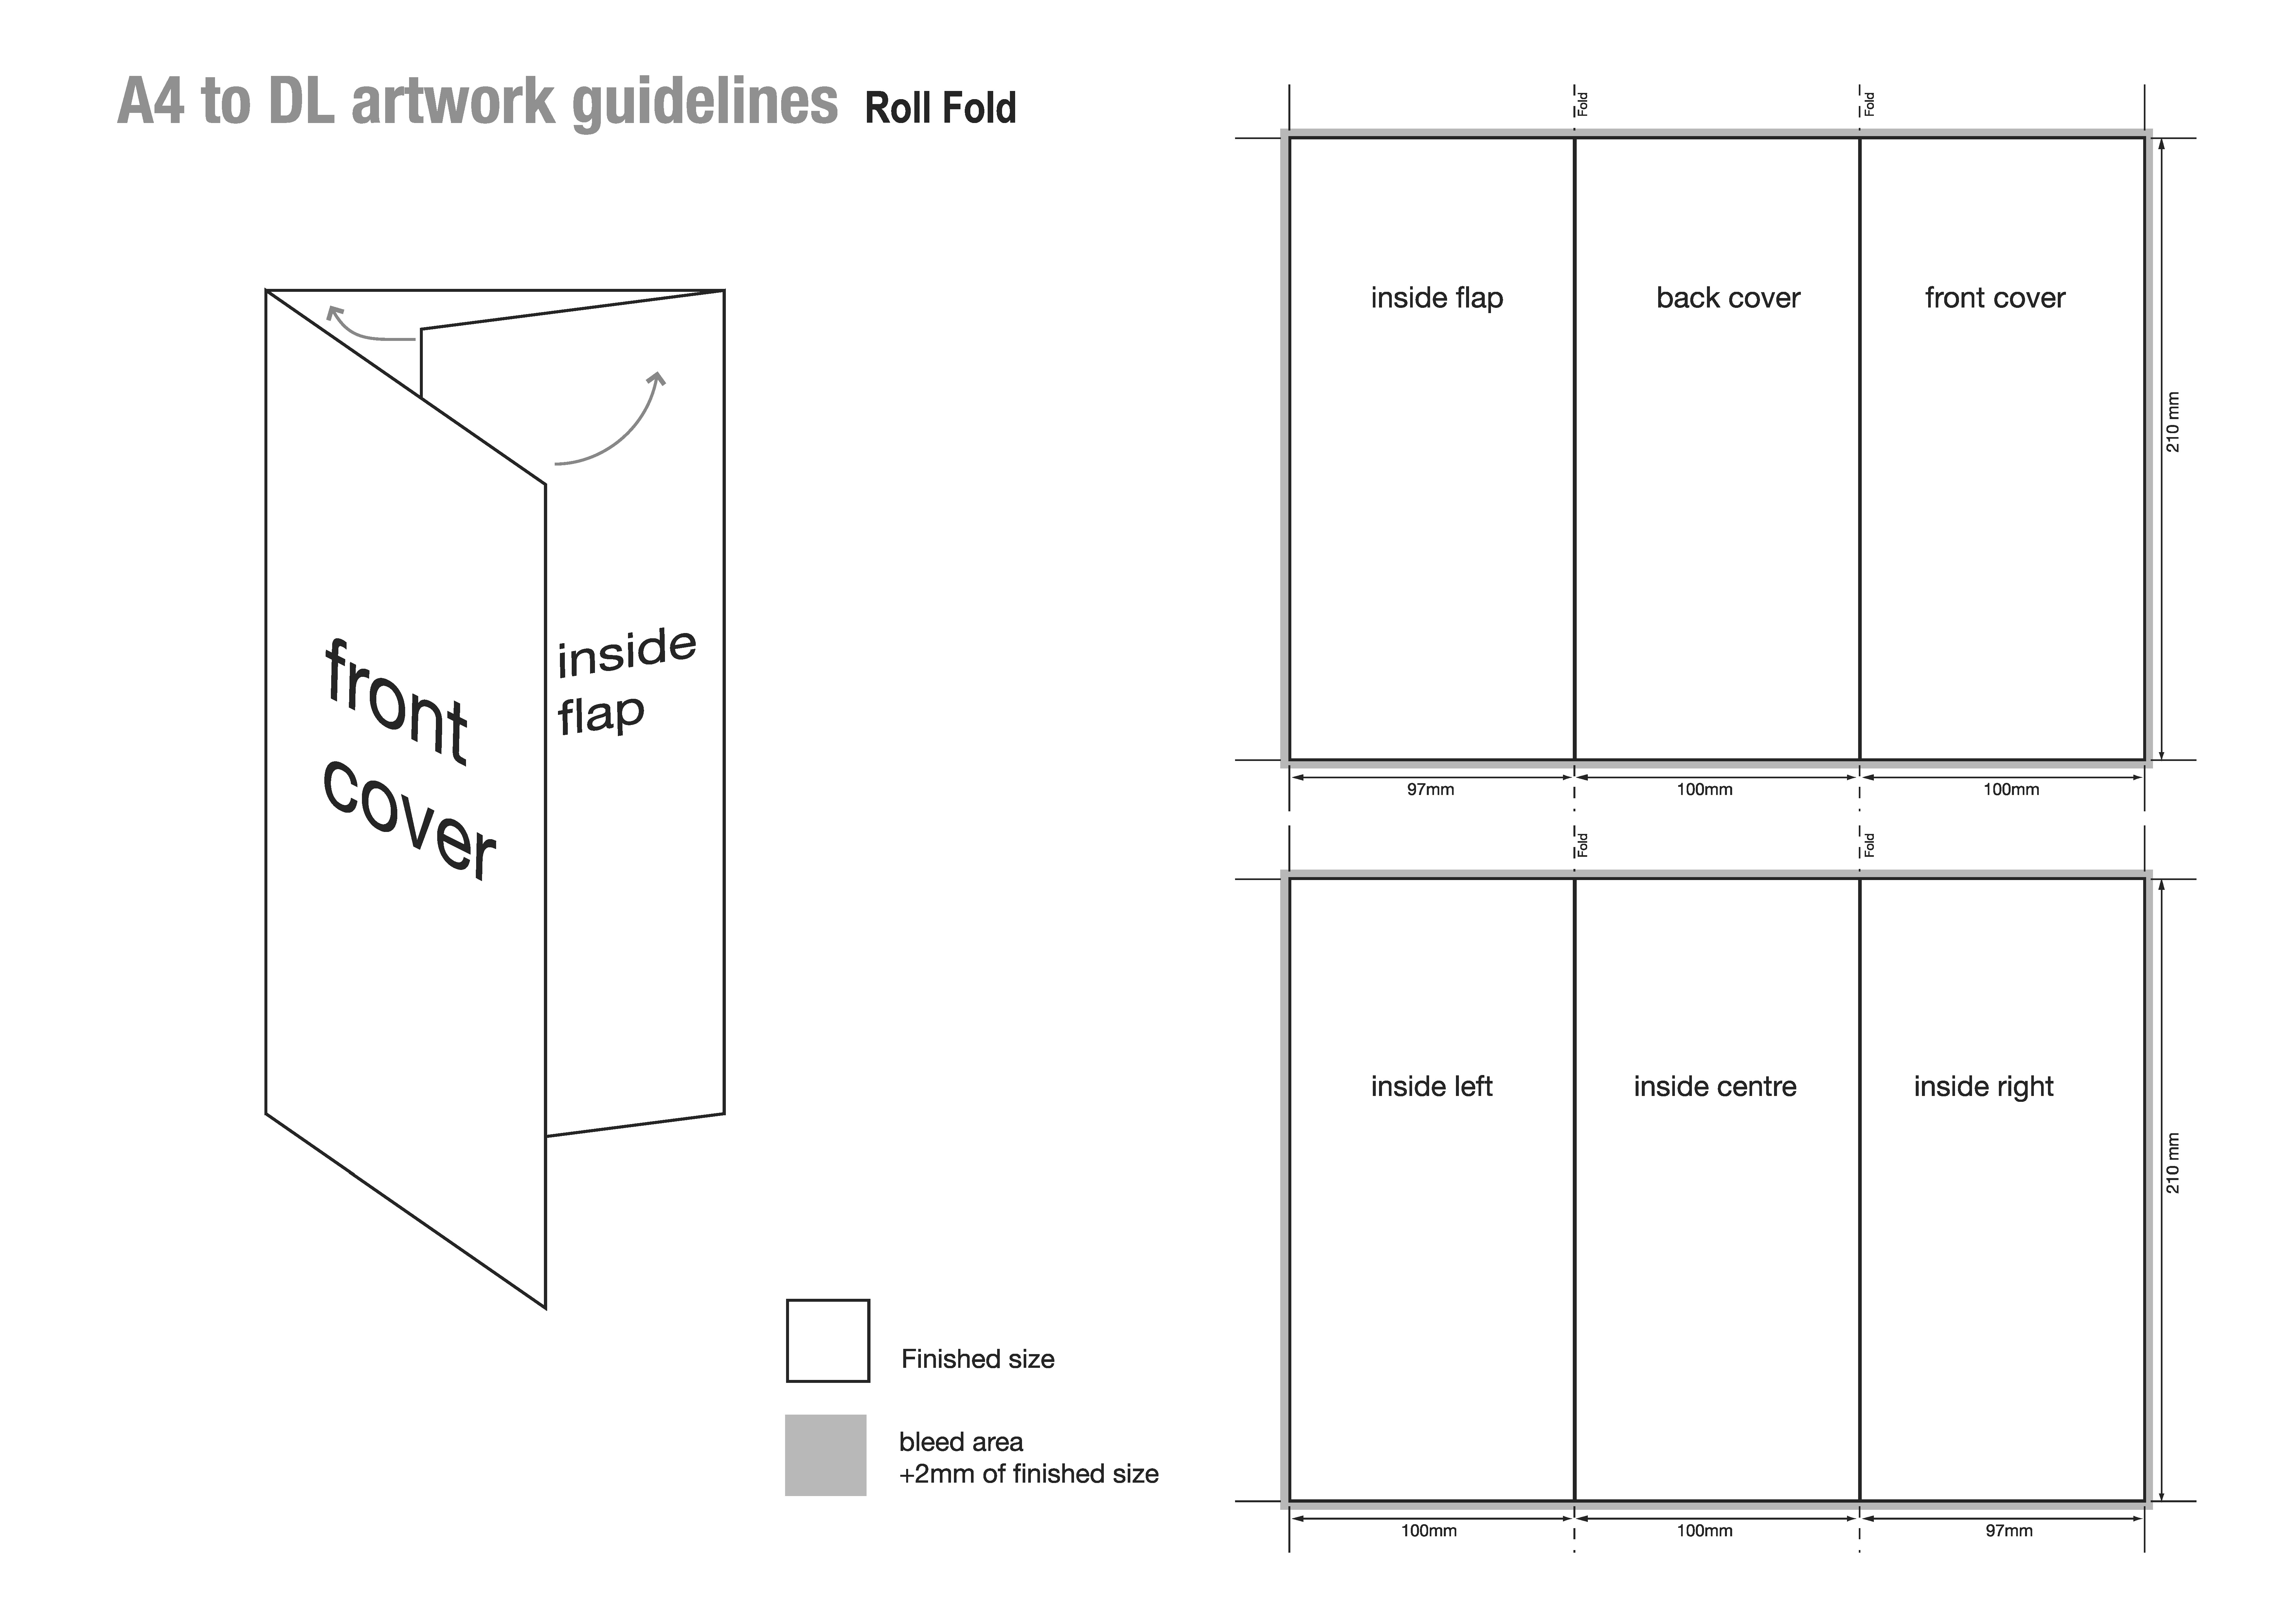 A4 to DL roll fold panel sizes